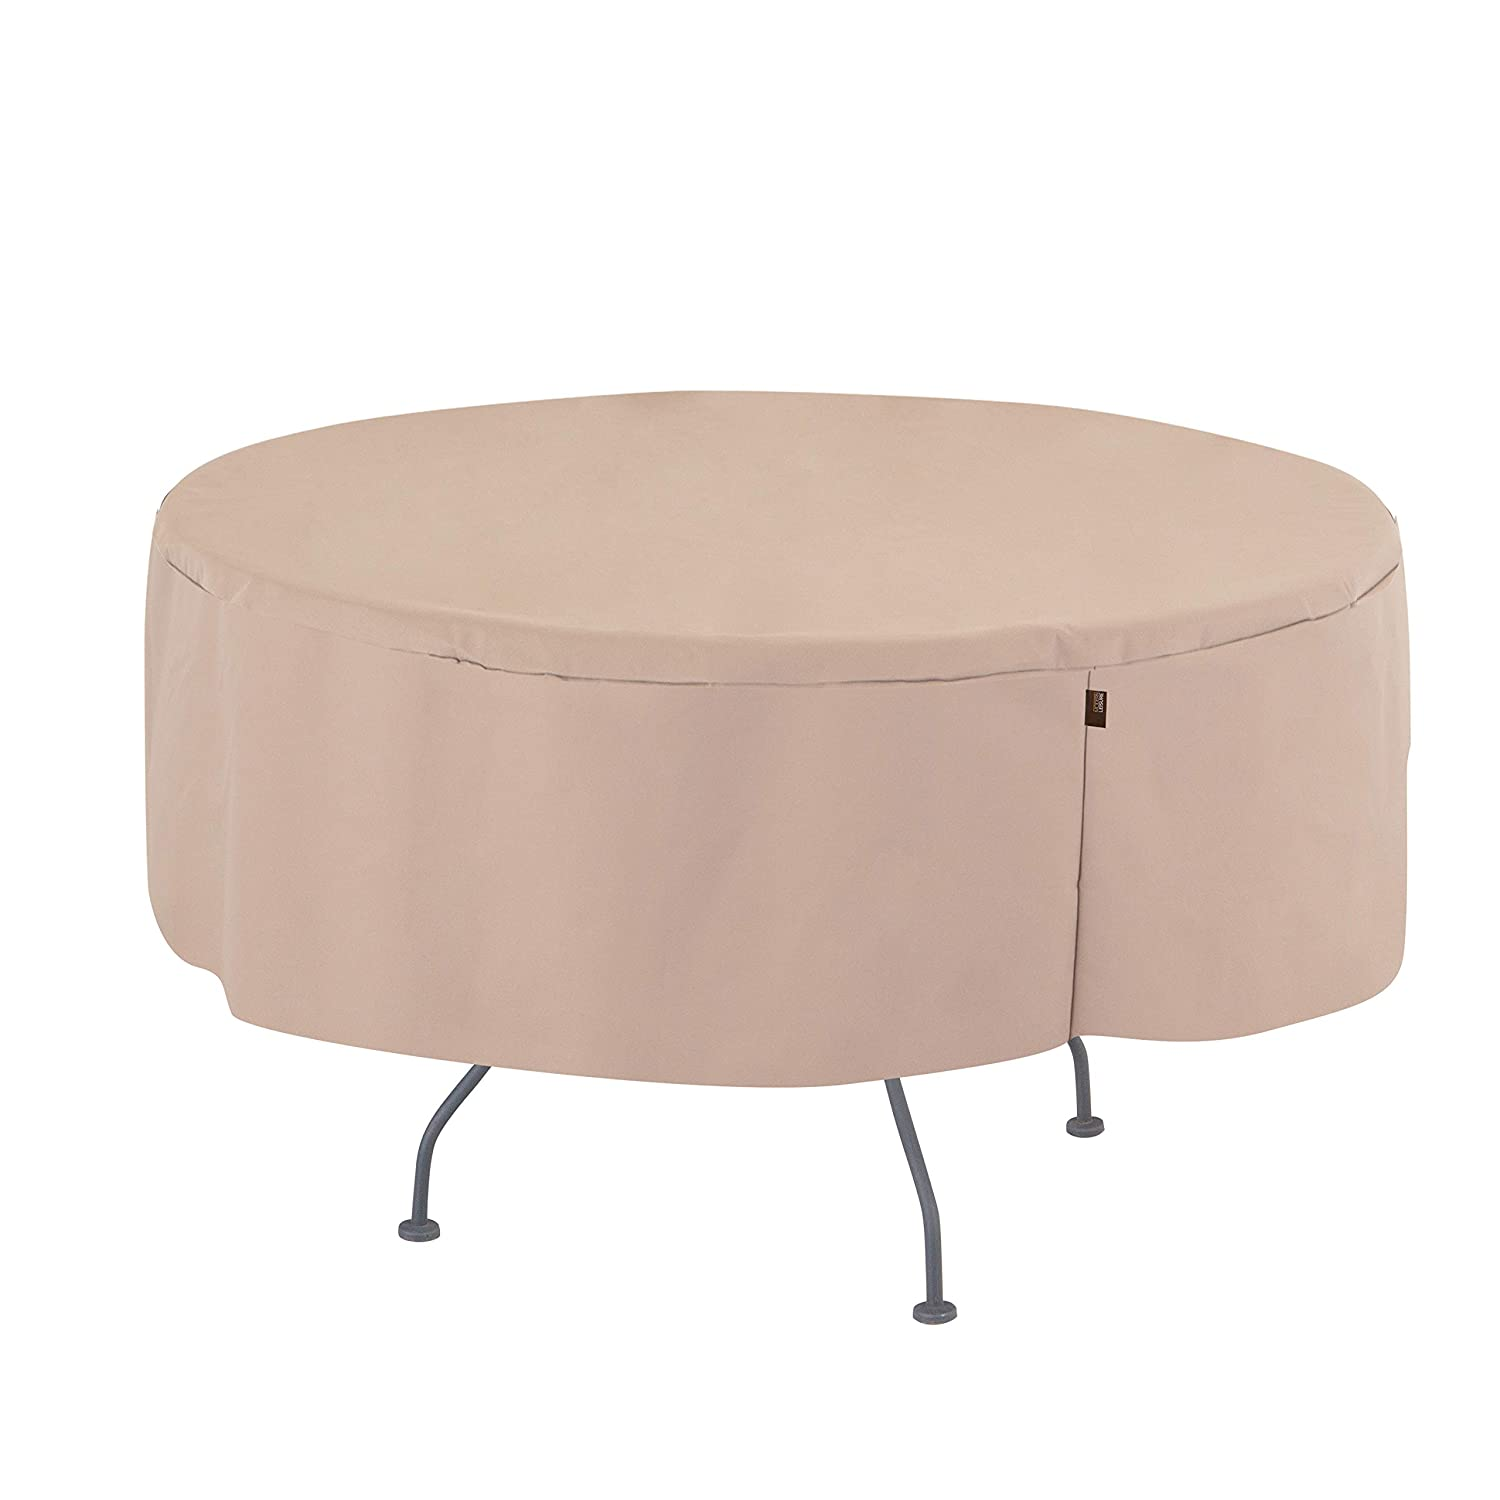 Modern Leisure 2963 Chalet Round Patio Table, Furniture, Outdoor Cover (50 D x 25 H inches) Water-Resistant, Khaki/Fossil